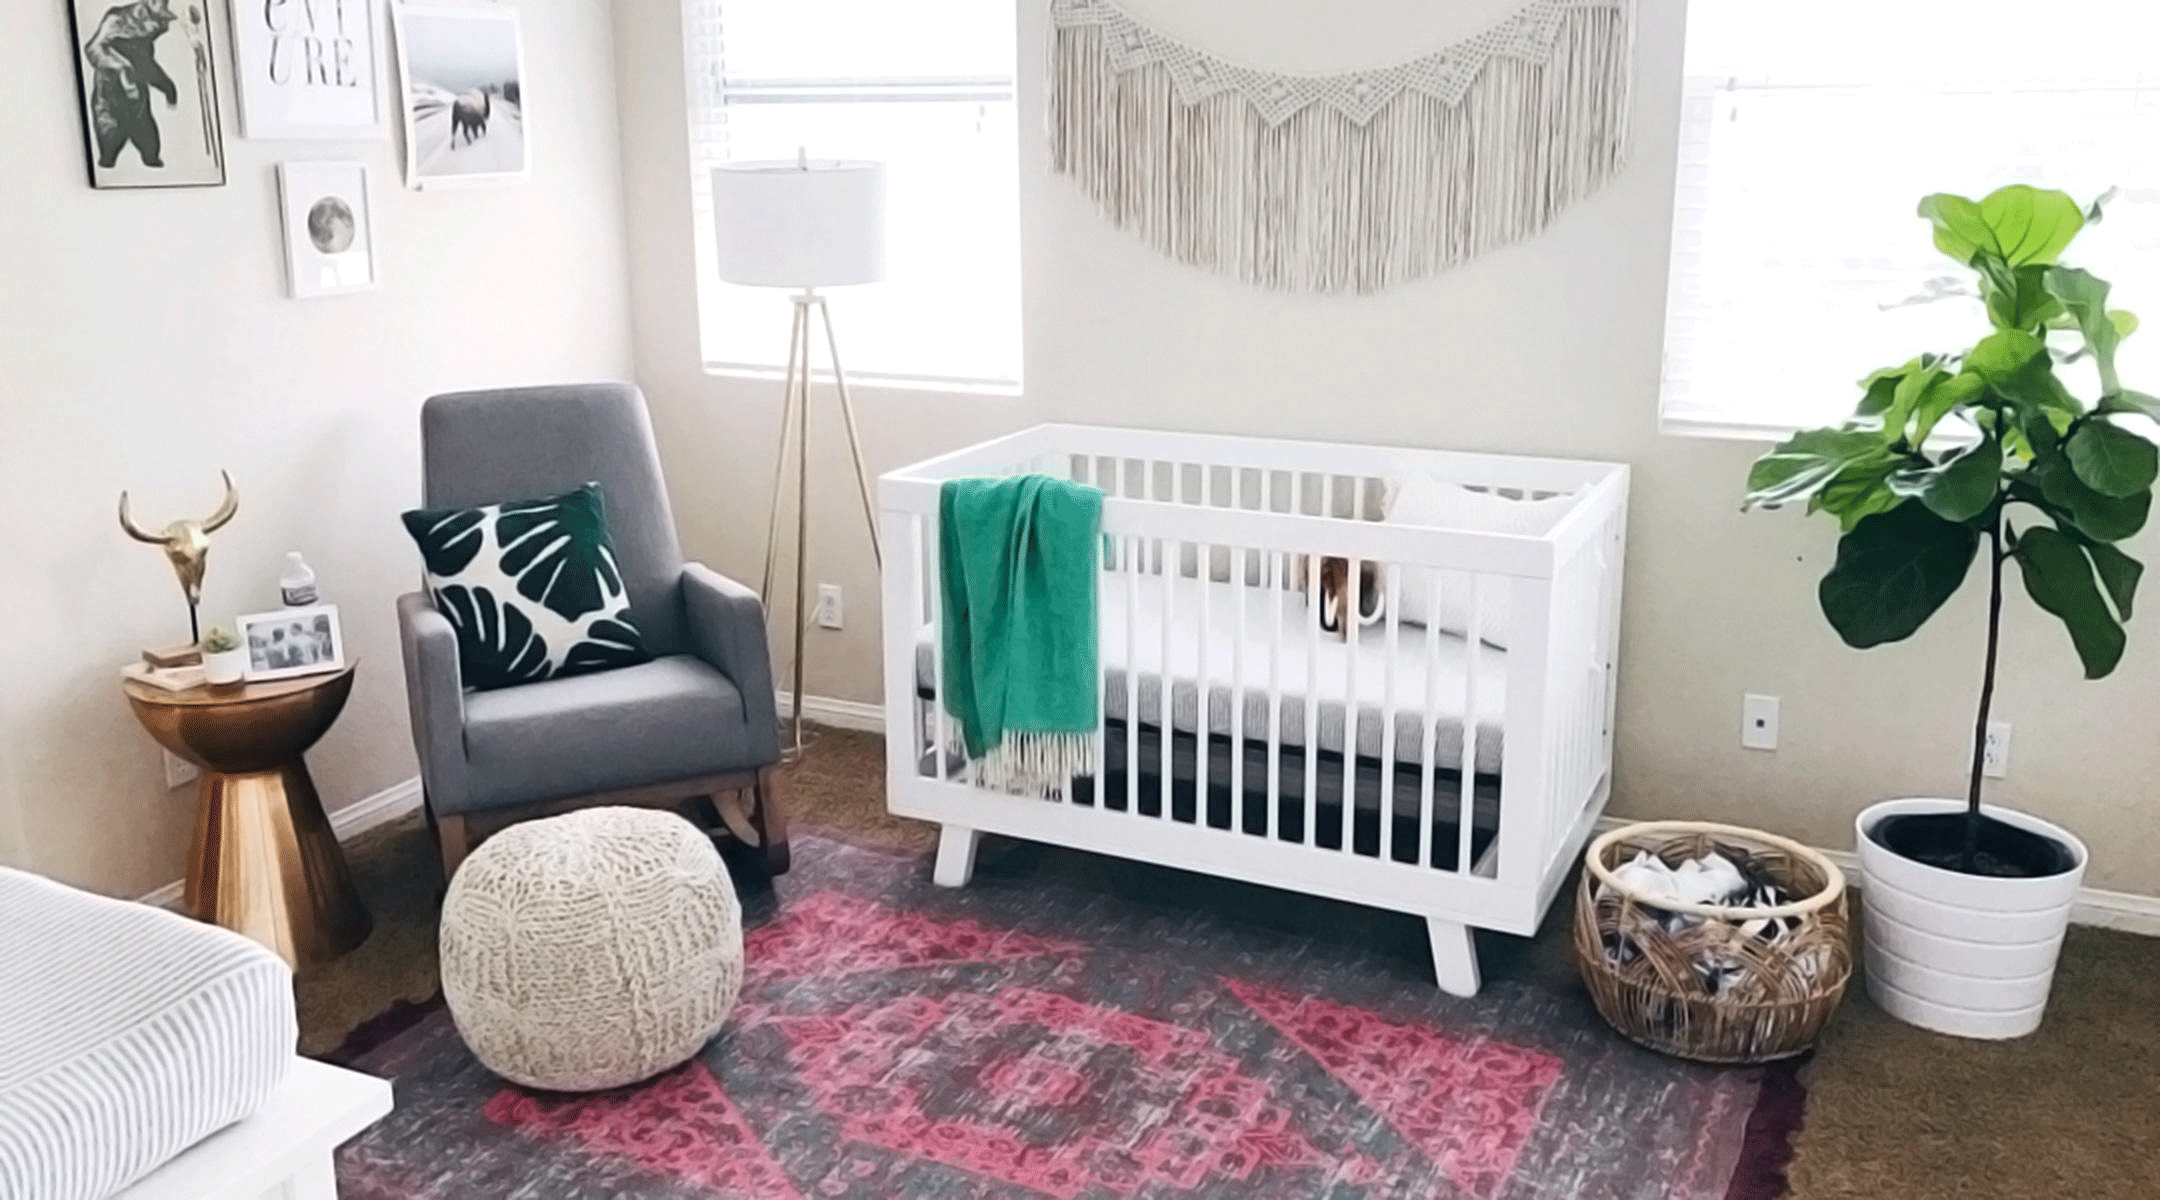 Best Baby Cribs in 2021 – Cribs Guide & Safety Issues